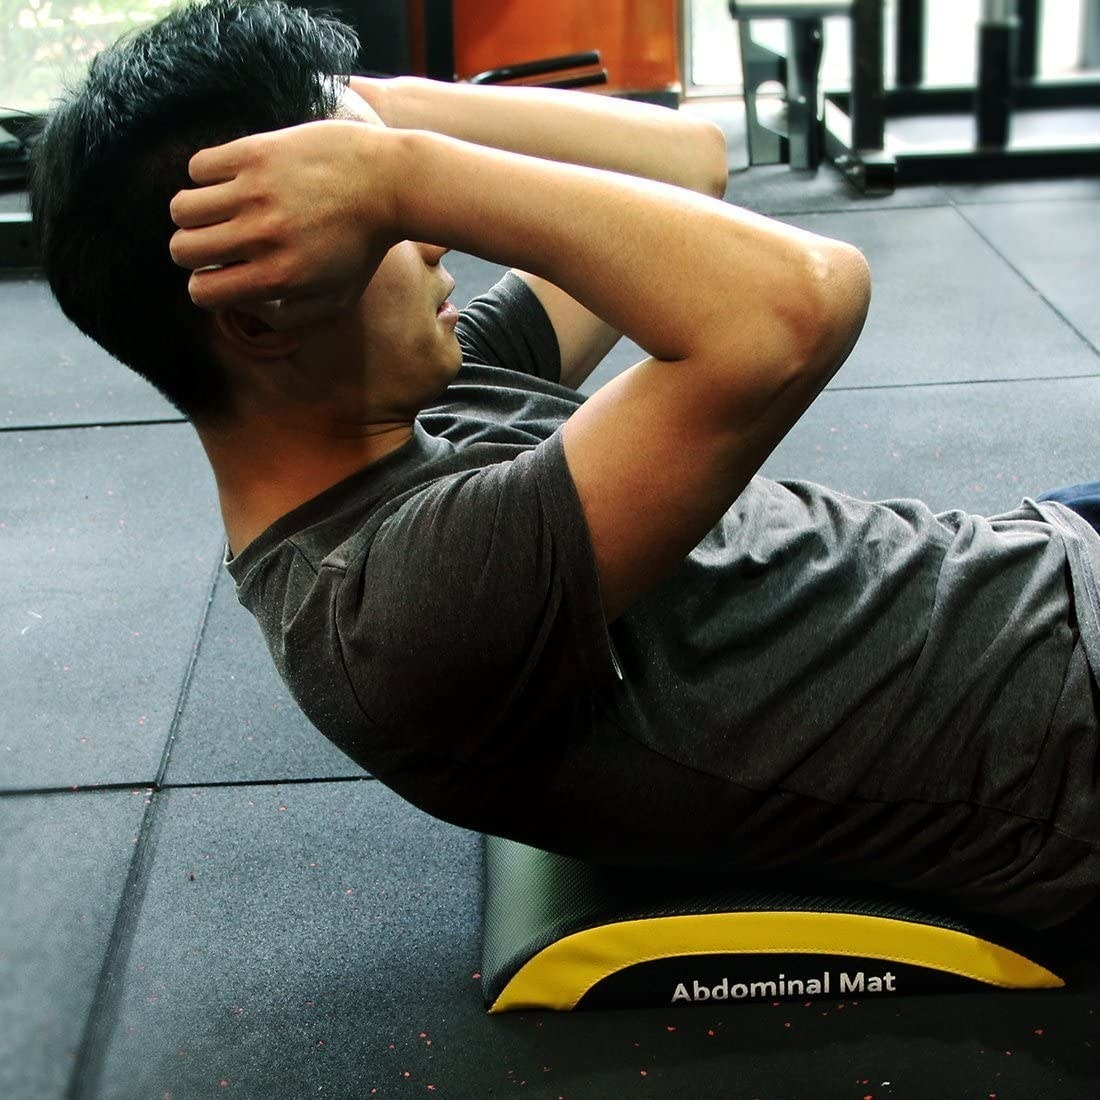 A model doing crunches with the abdominal mat supporting their back, giving them a wider range of motion as they move down during the crunch